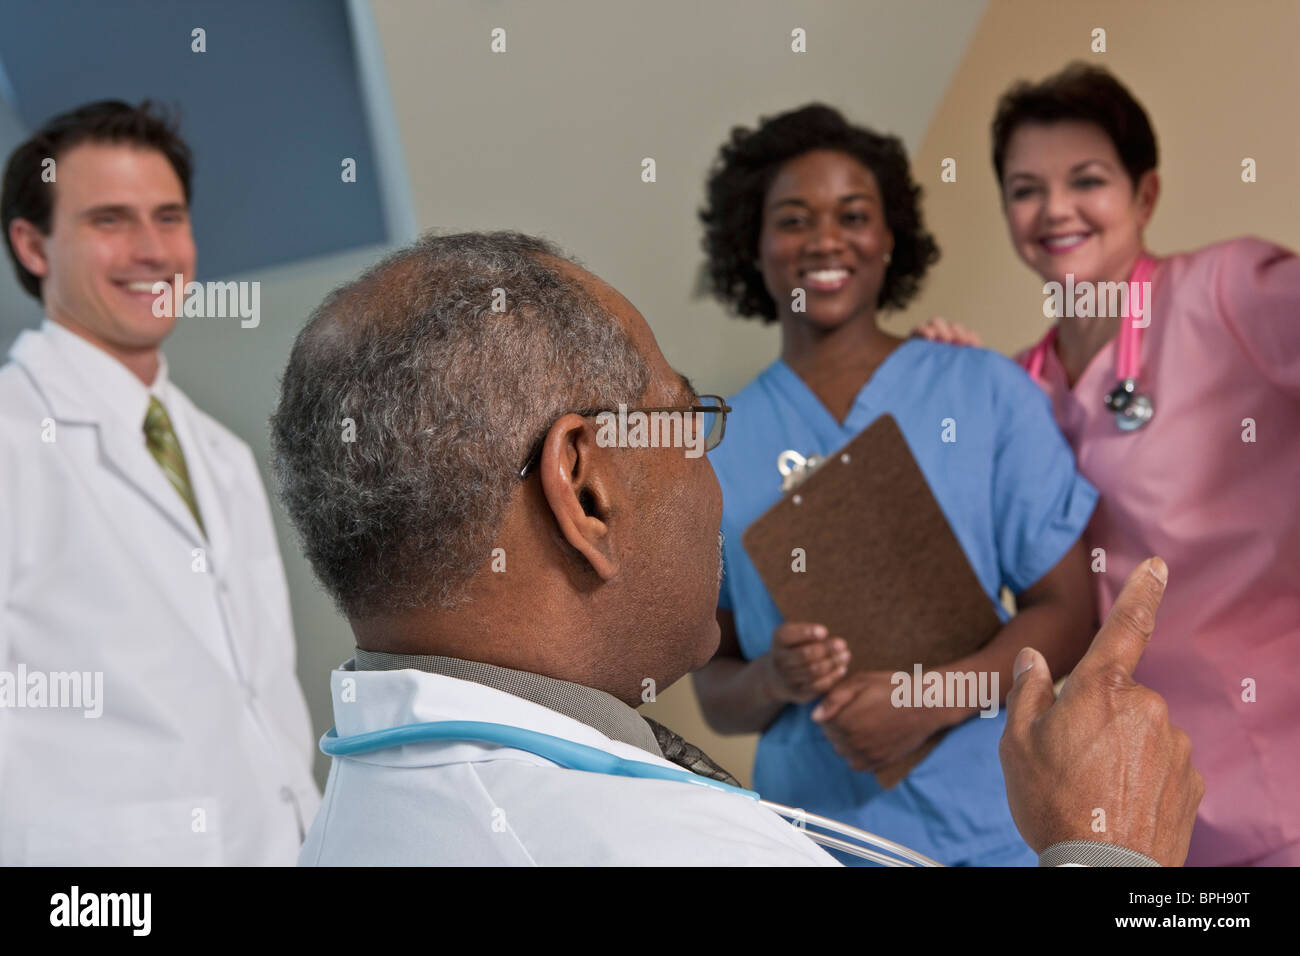 Doctor with his colleagues in a hospital - Stock Image